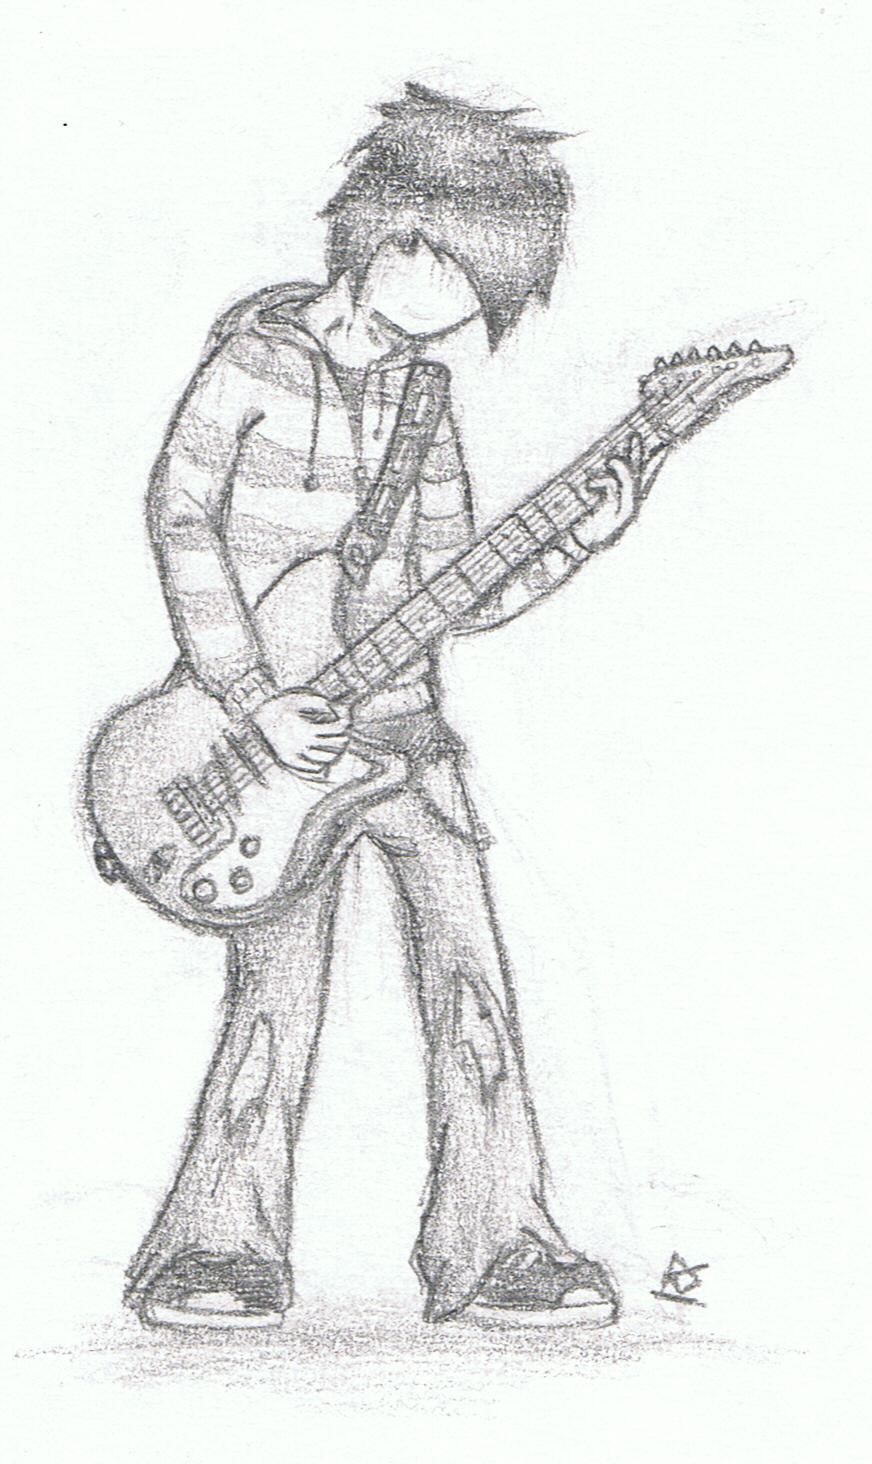 Guitar sketch guitar drawing boy sketch boys playing sad girl animal